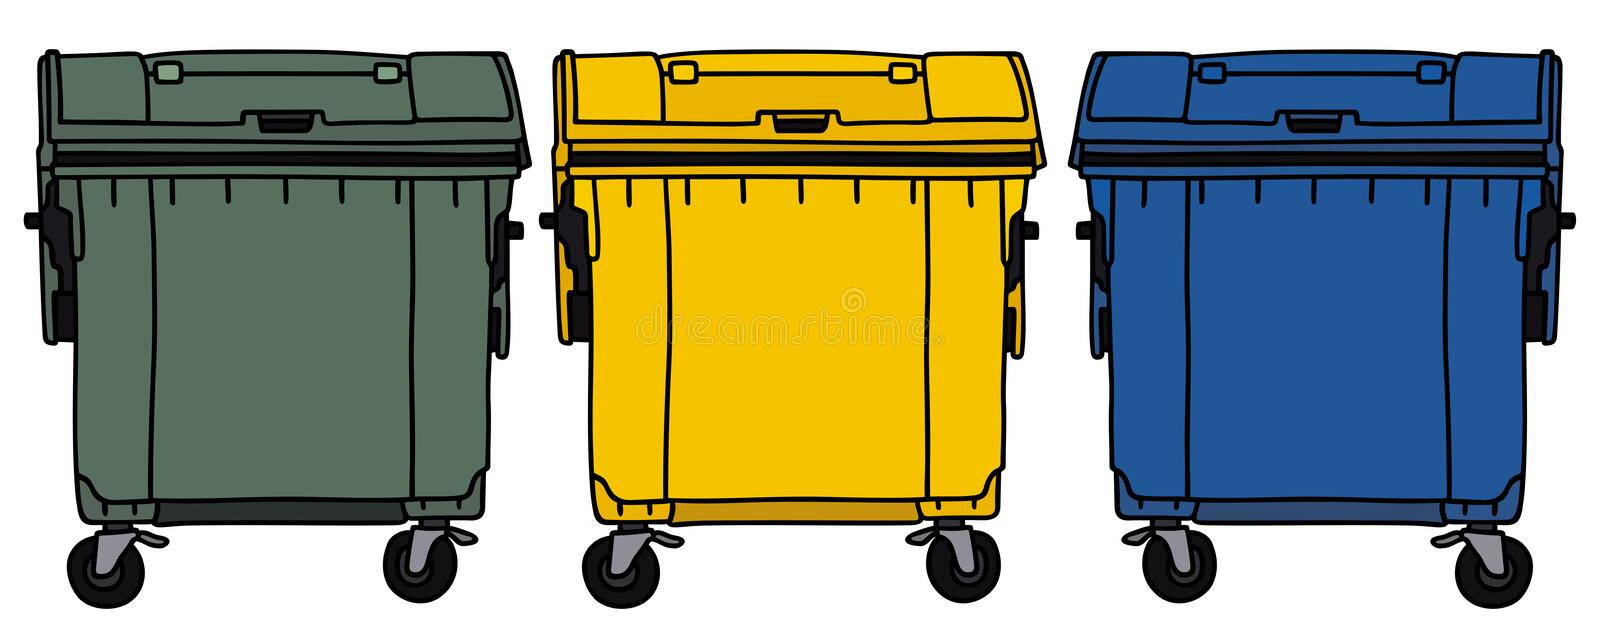 Recycling containers. Hand drawing of three recycling containers vector illustration